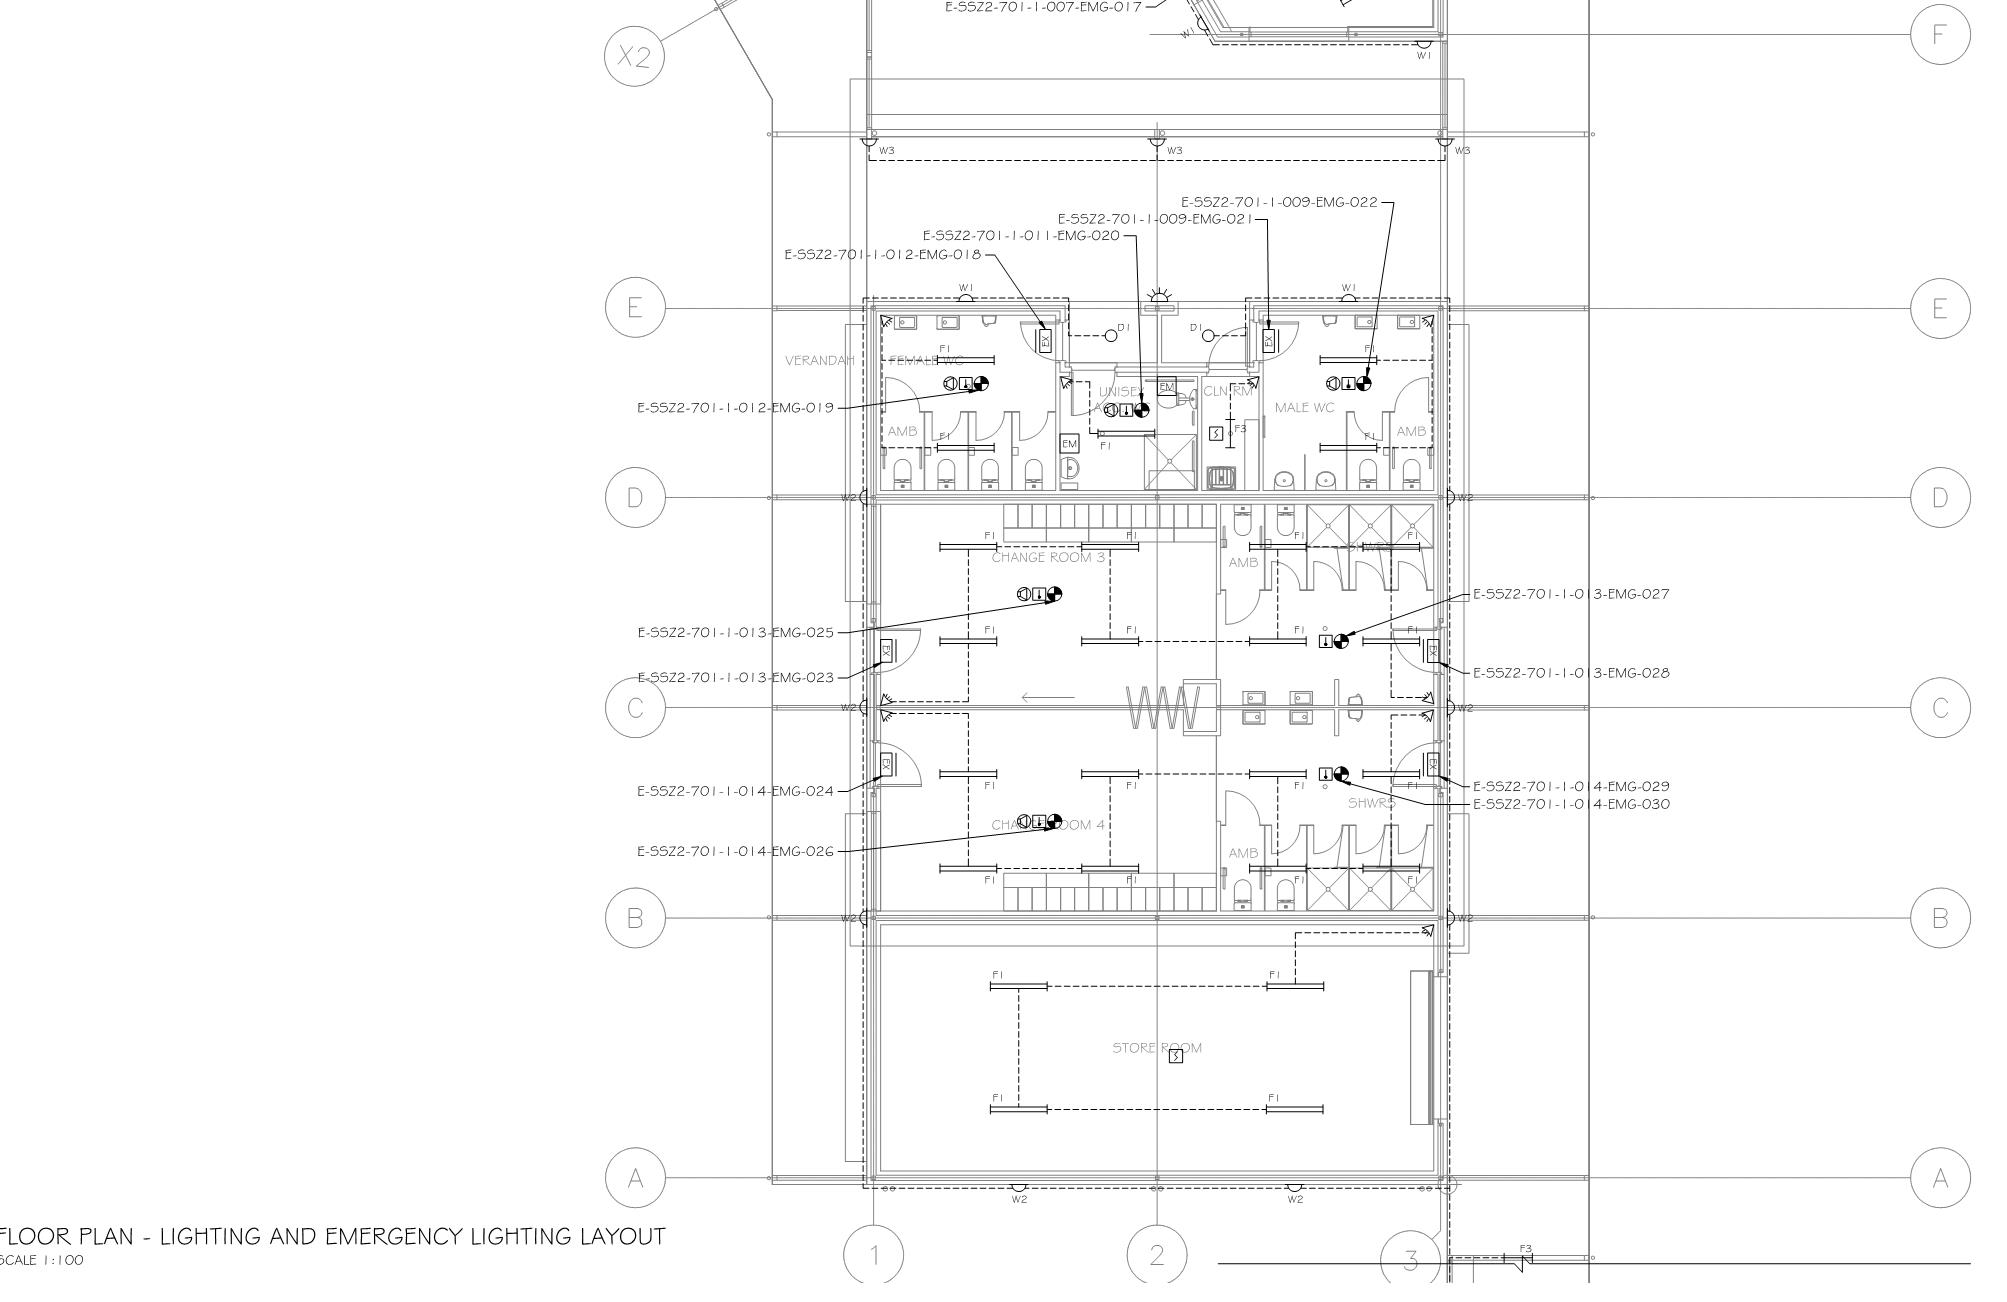 Electrical Services CAD drafting